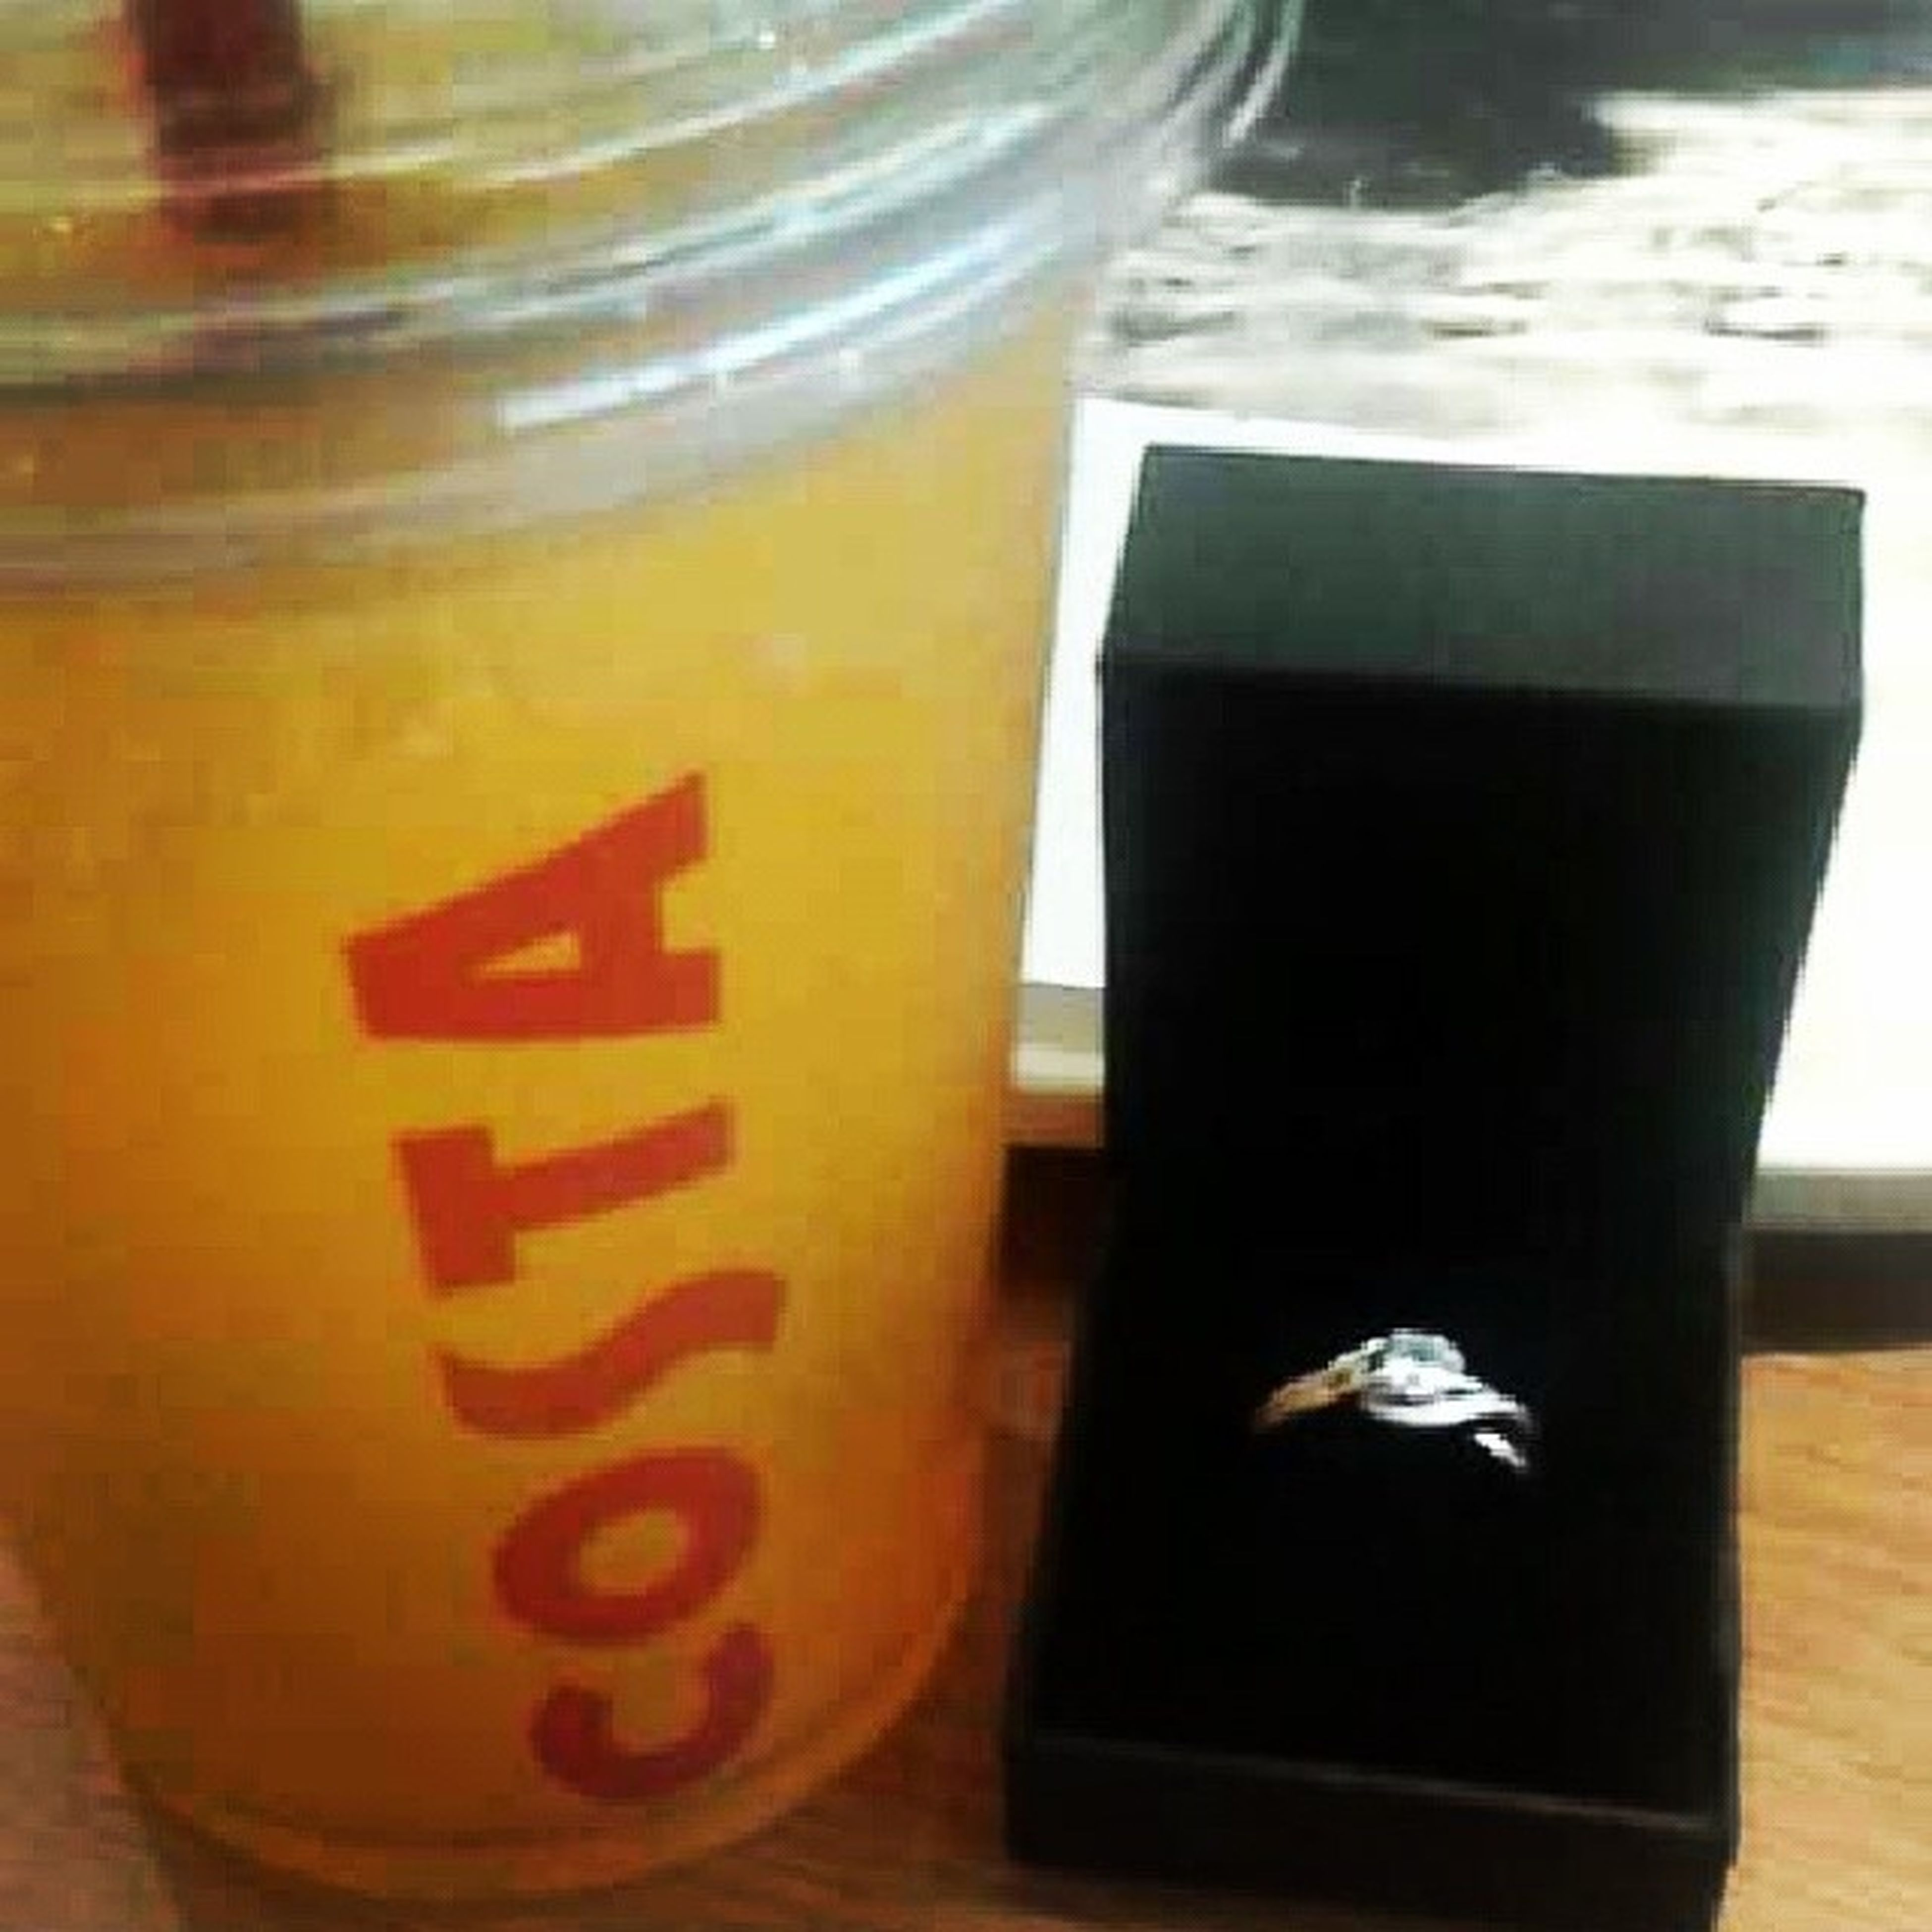 Love love love Ring Prom Hsamuel Silver  bluetopaz love happy jewellery yay nextmonth fave costa peachlemondade disappointment no upset stillhappy happygirly